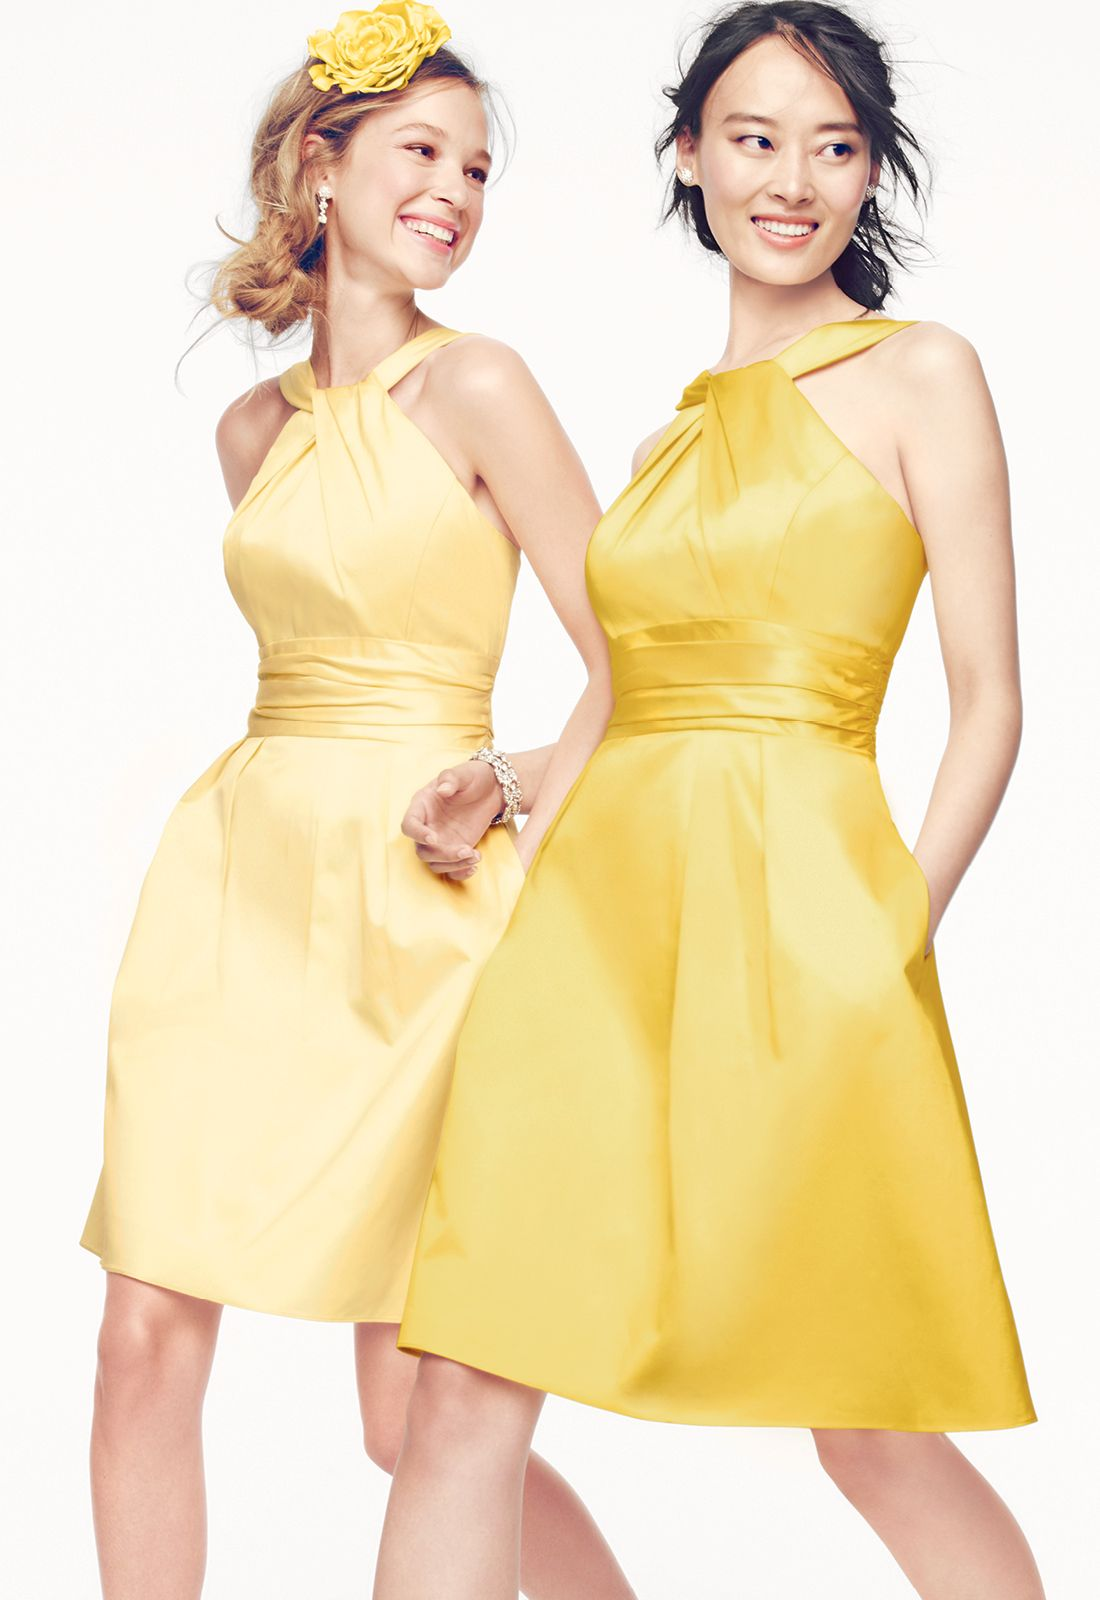 b6353ef7058437 David s Bridal Short Cotton Bridesmaid Dress with Y-Neck and Skirt Pleating.  Style 83690 in Canary and Sunbeam.